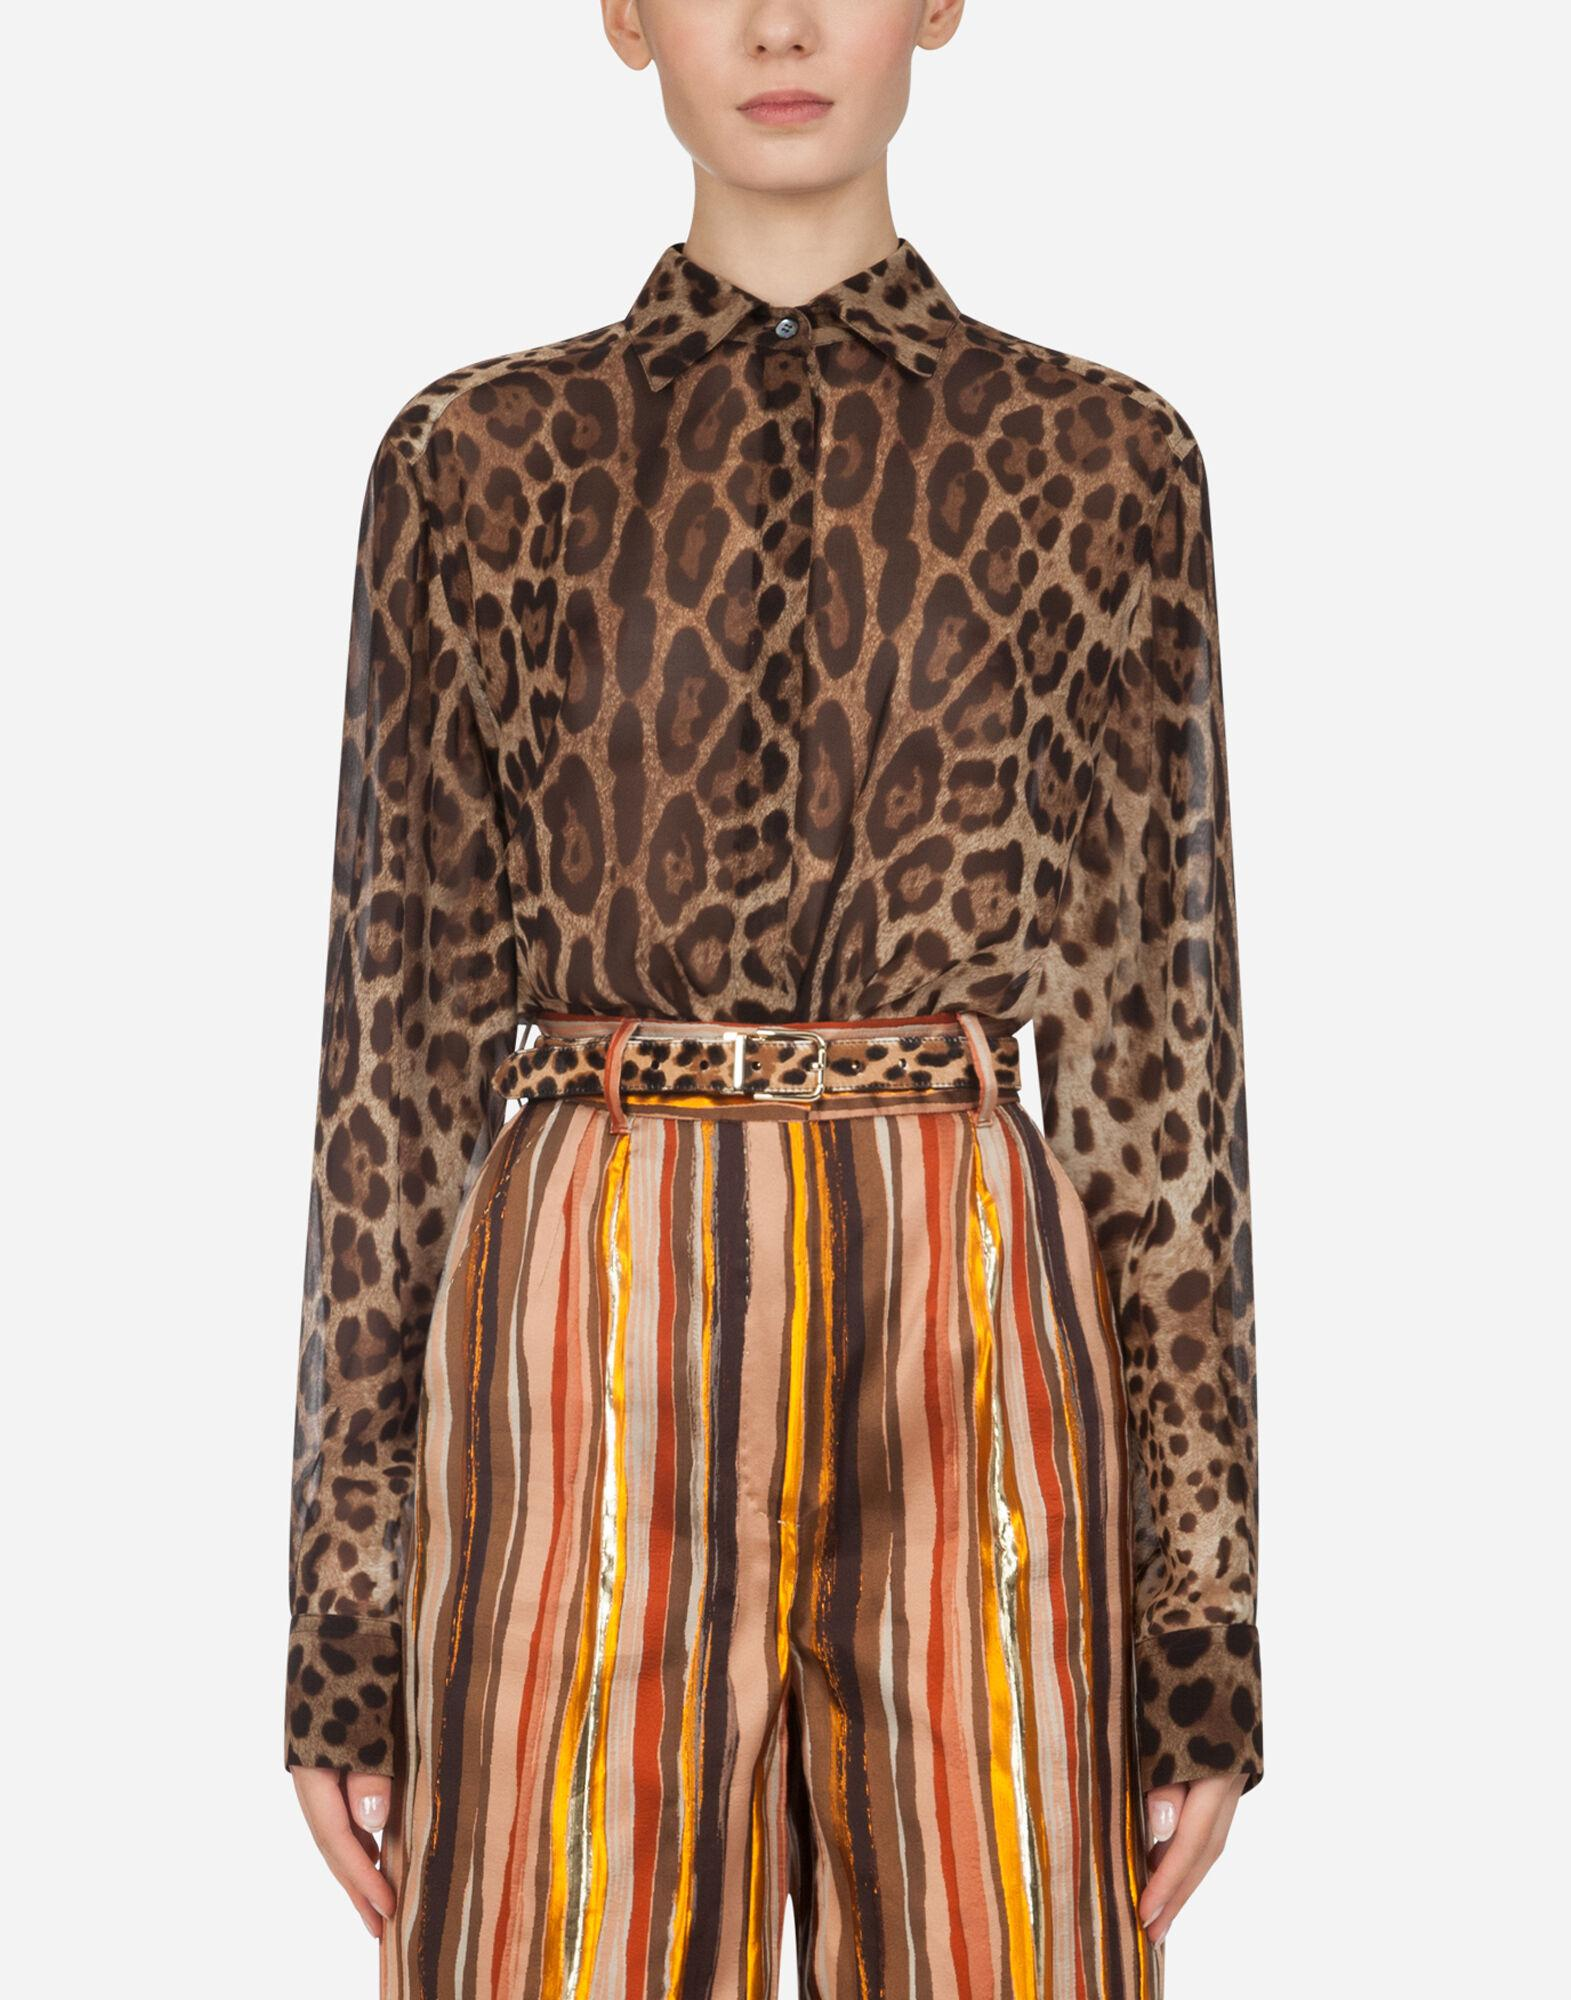 Georgette shirt with leopard print